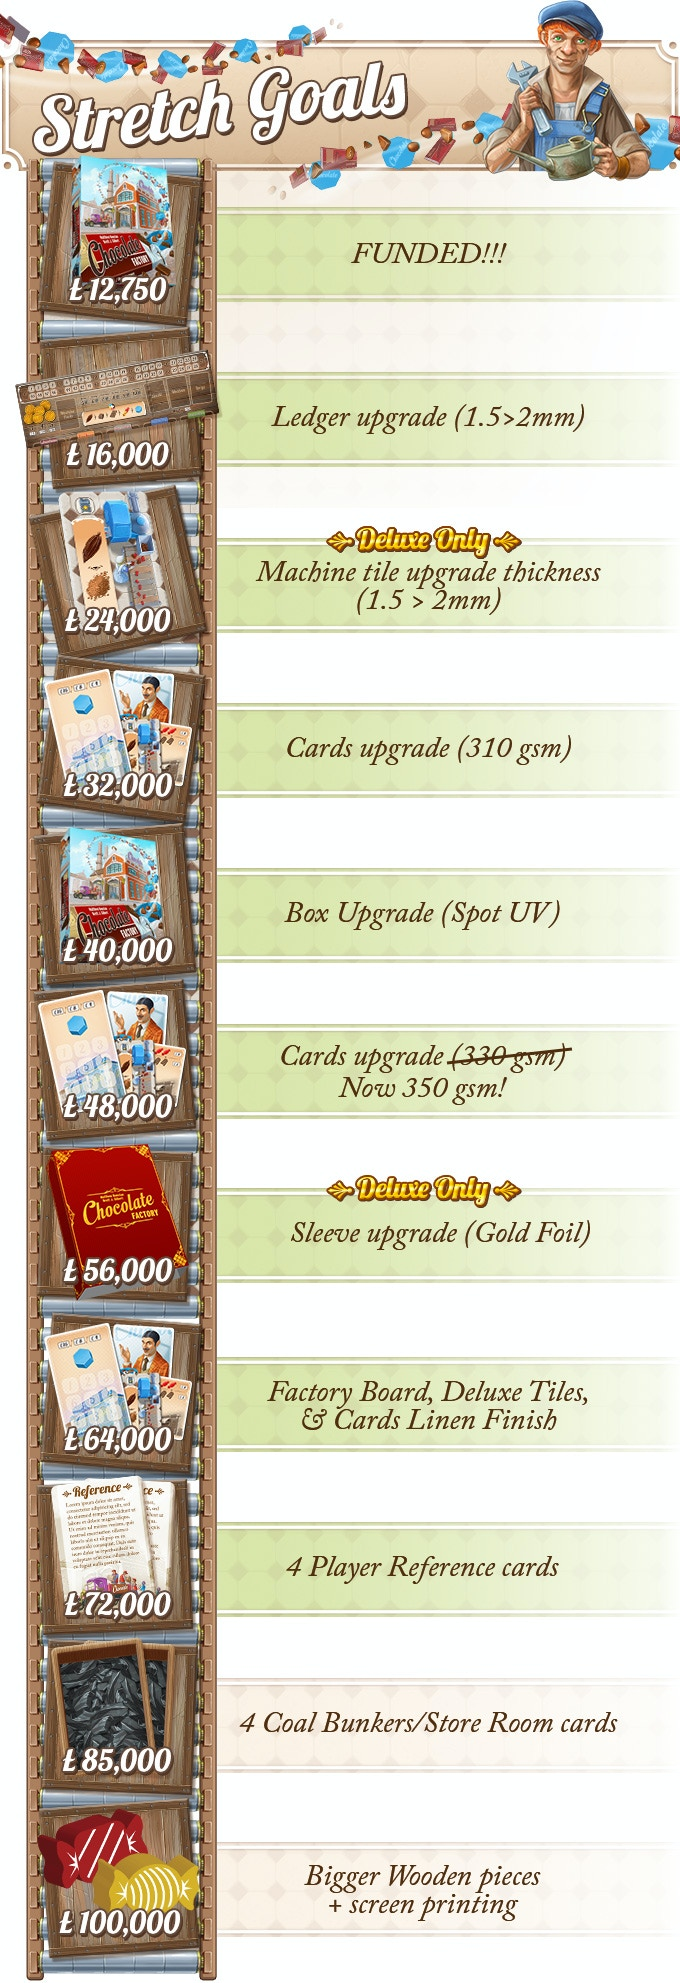 Final stretch goals revealed. Only 2 to go!